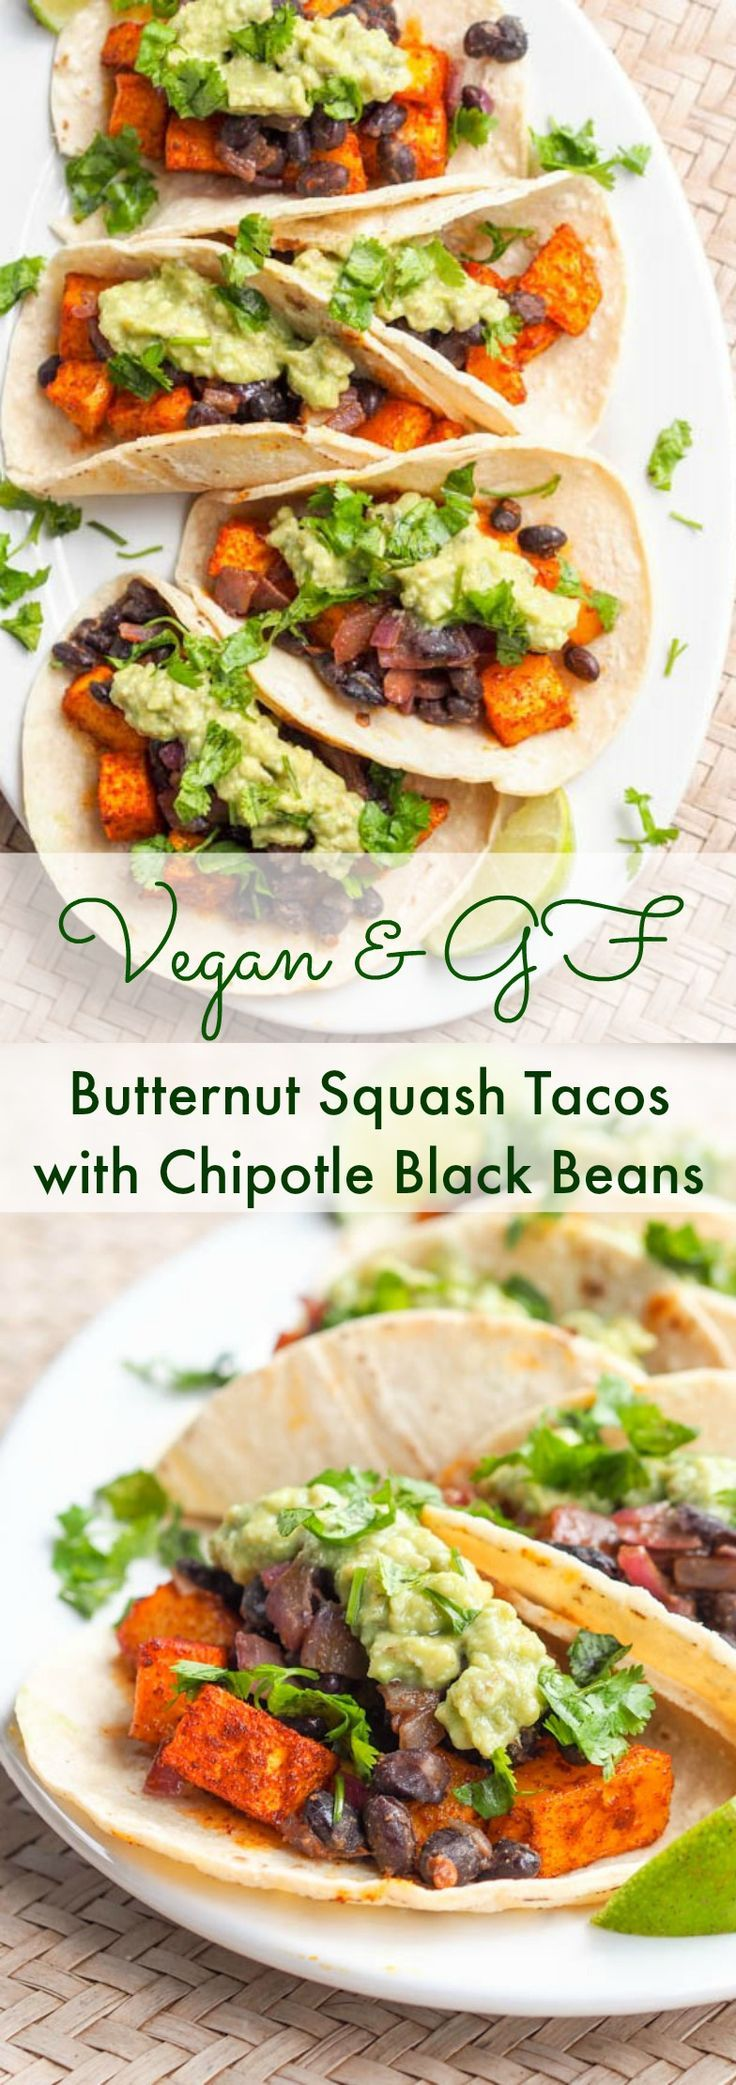 Vegan butternut squash tacos with chipotle black beans are bound to be your new favorite meal. Creamy and smoky roasted squash paired with spicy black beans, crunchy red onions, citrusy lime juice, and creamy avocado crema, all wrapped up in a small soft corn tortilla. Gluten free too.